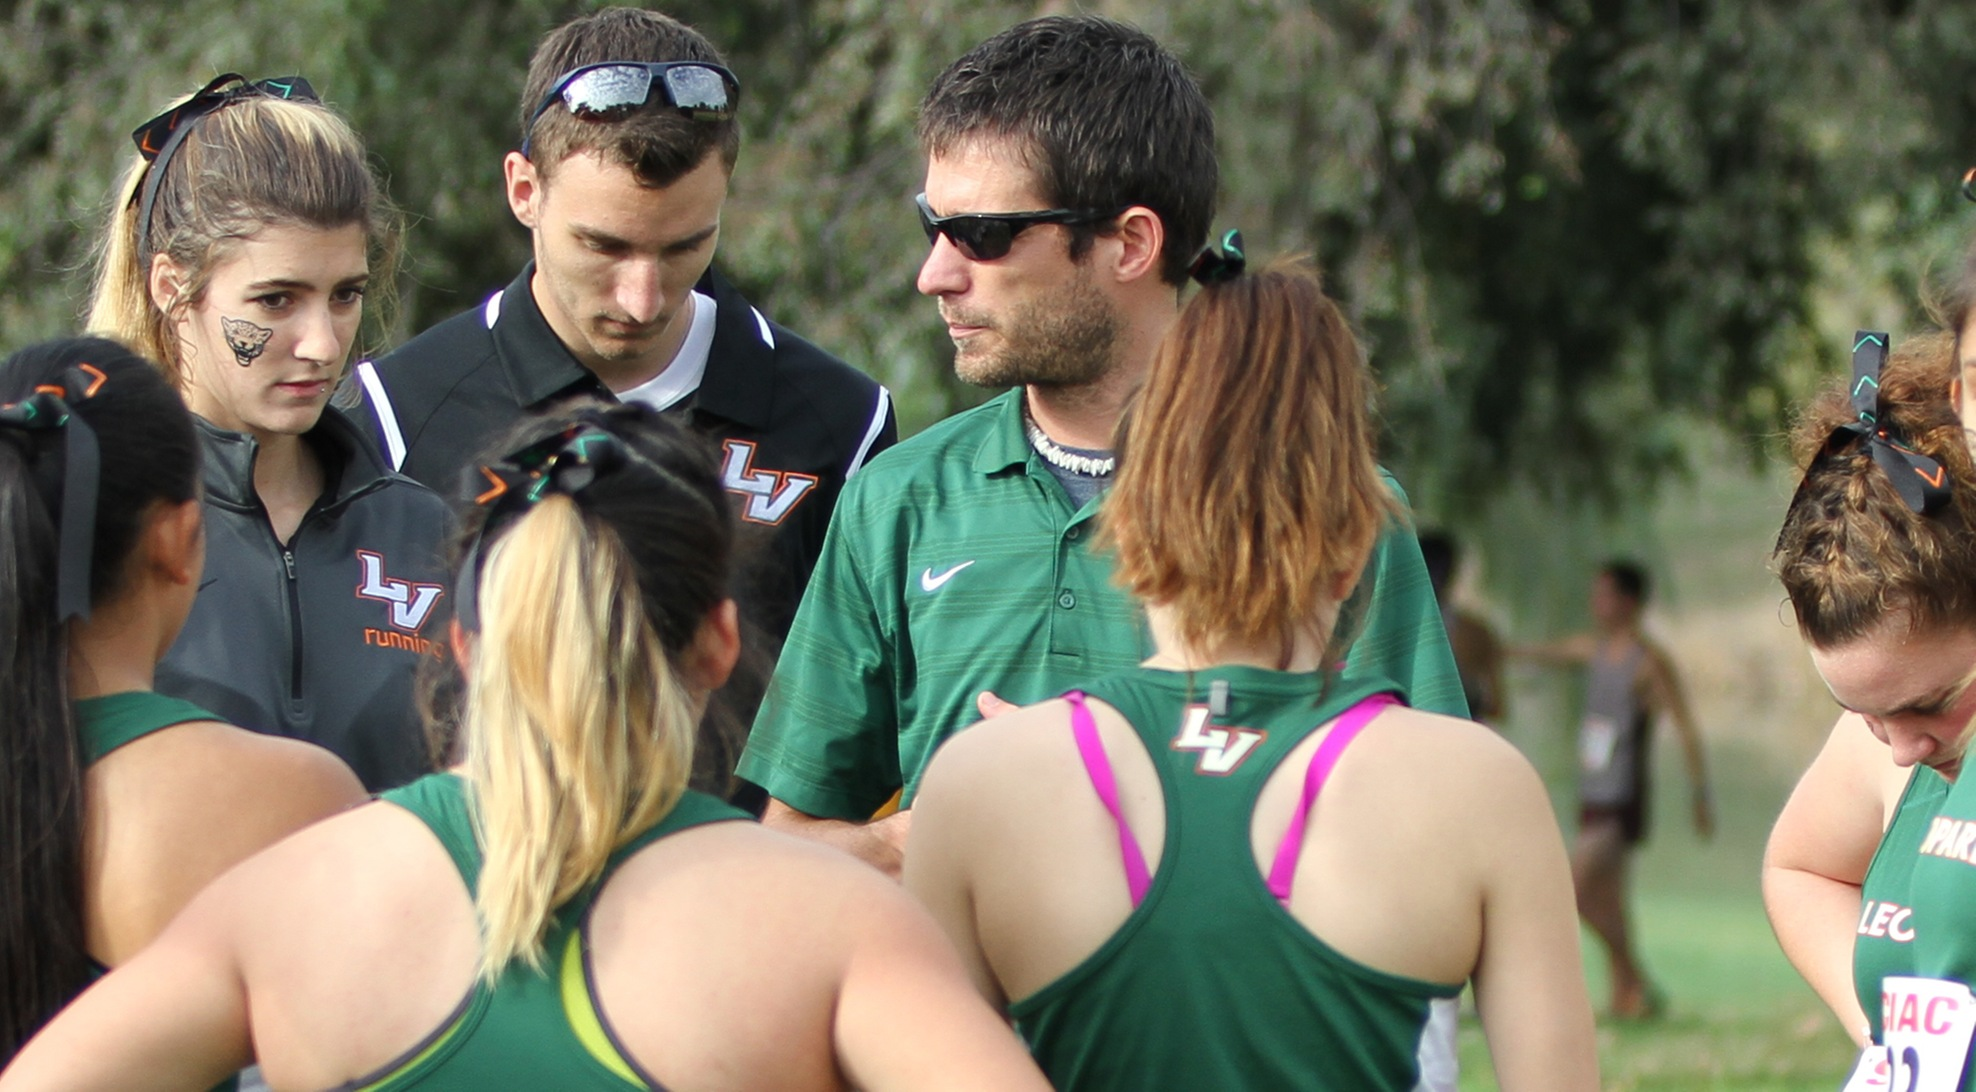 George steps down as cross country head coach